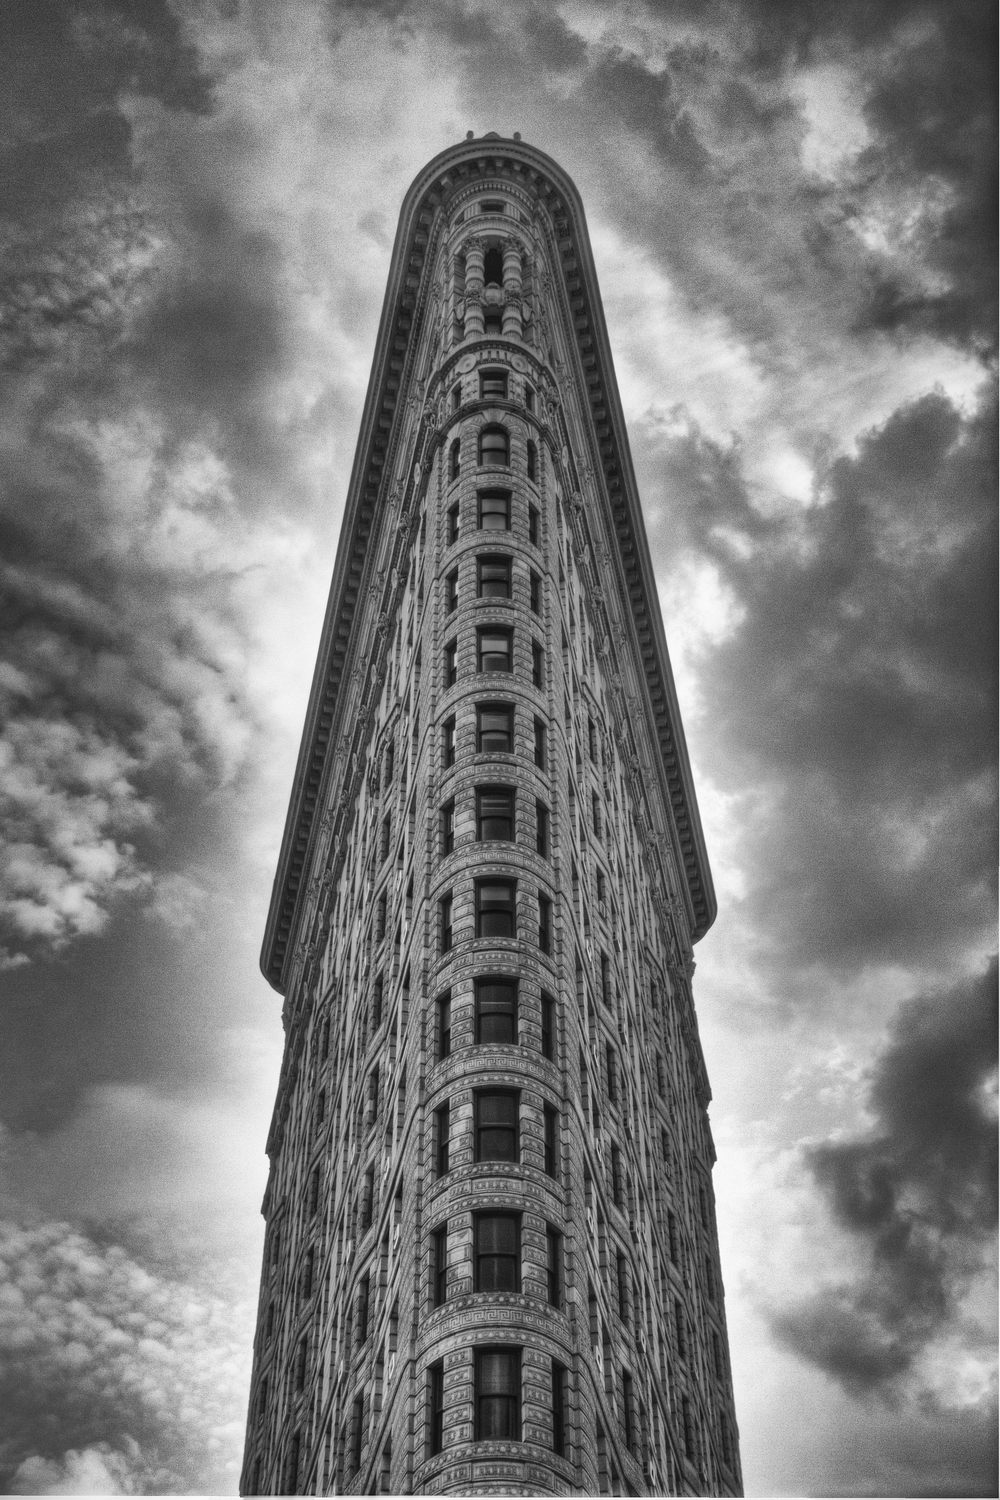 The Flatiron Building by Shaun Nelson